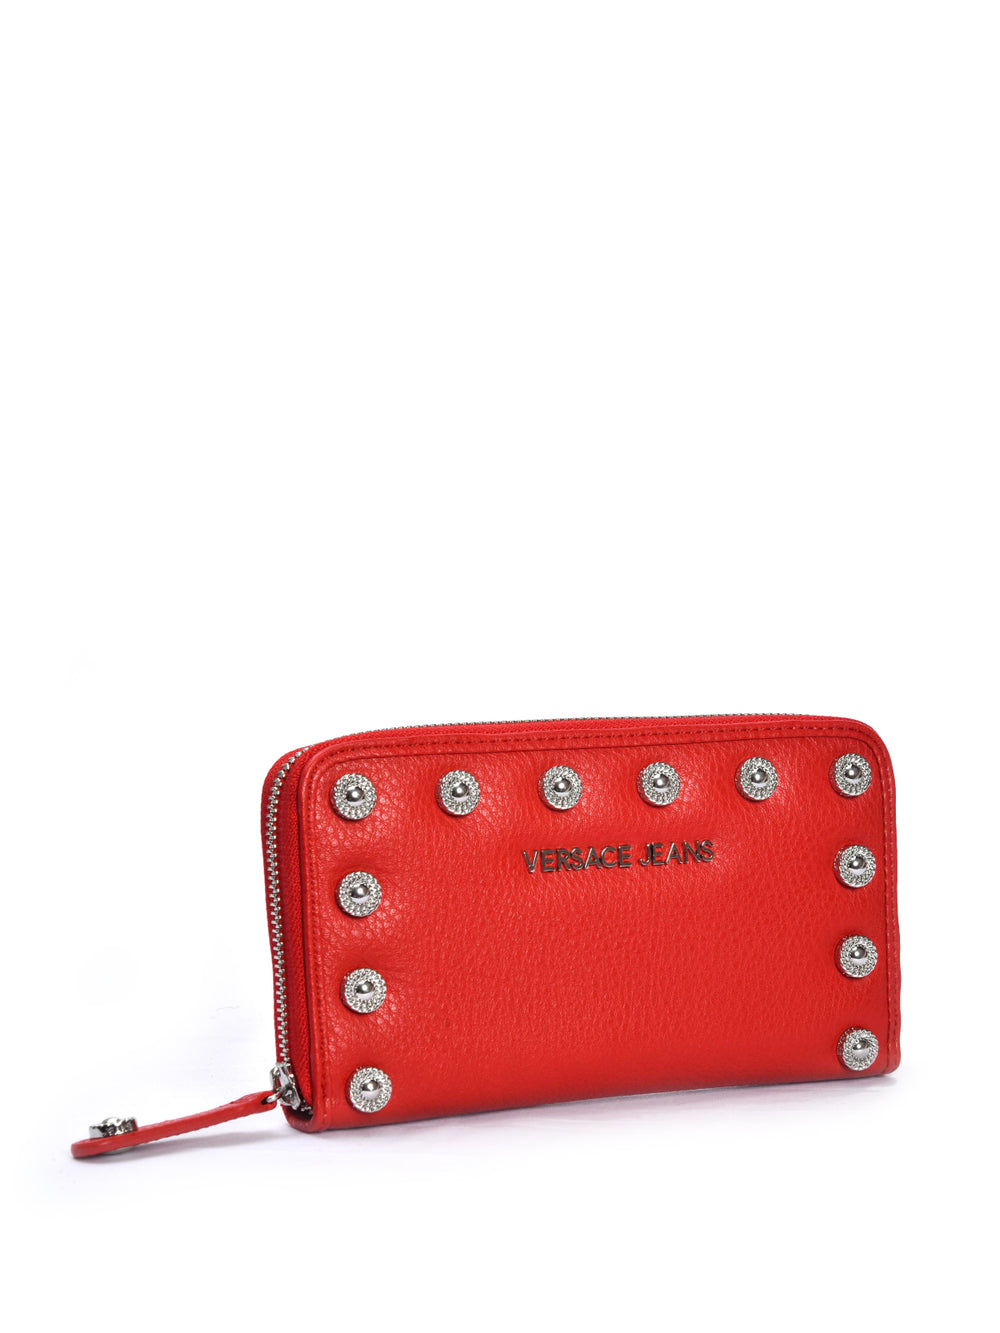 Studded Red Wallet, VERSACE JEANS - elilhaam.com